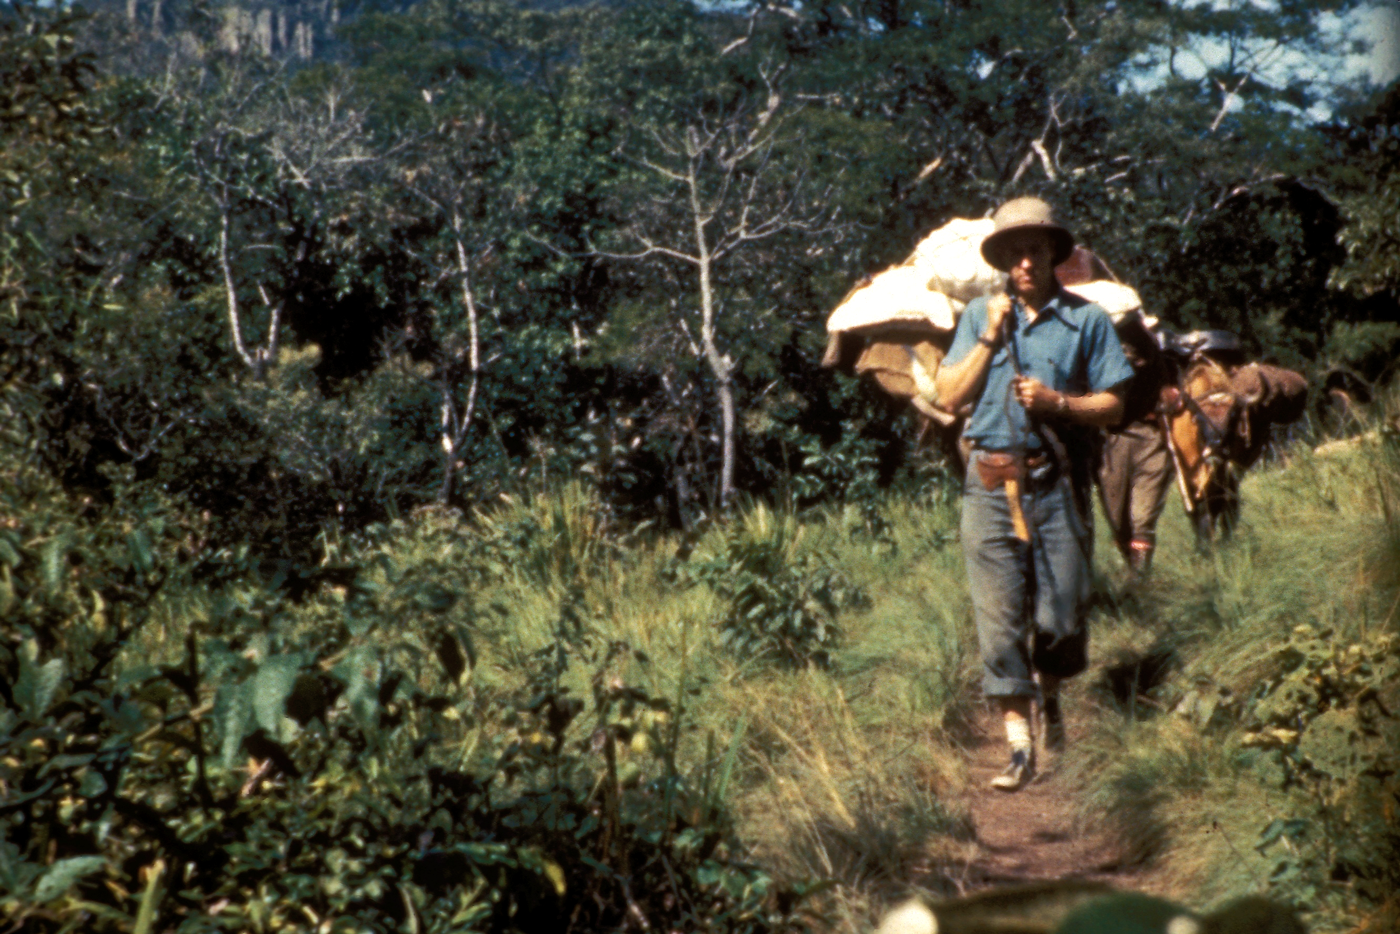 Missionary hiking into tribe